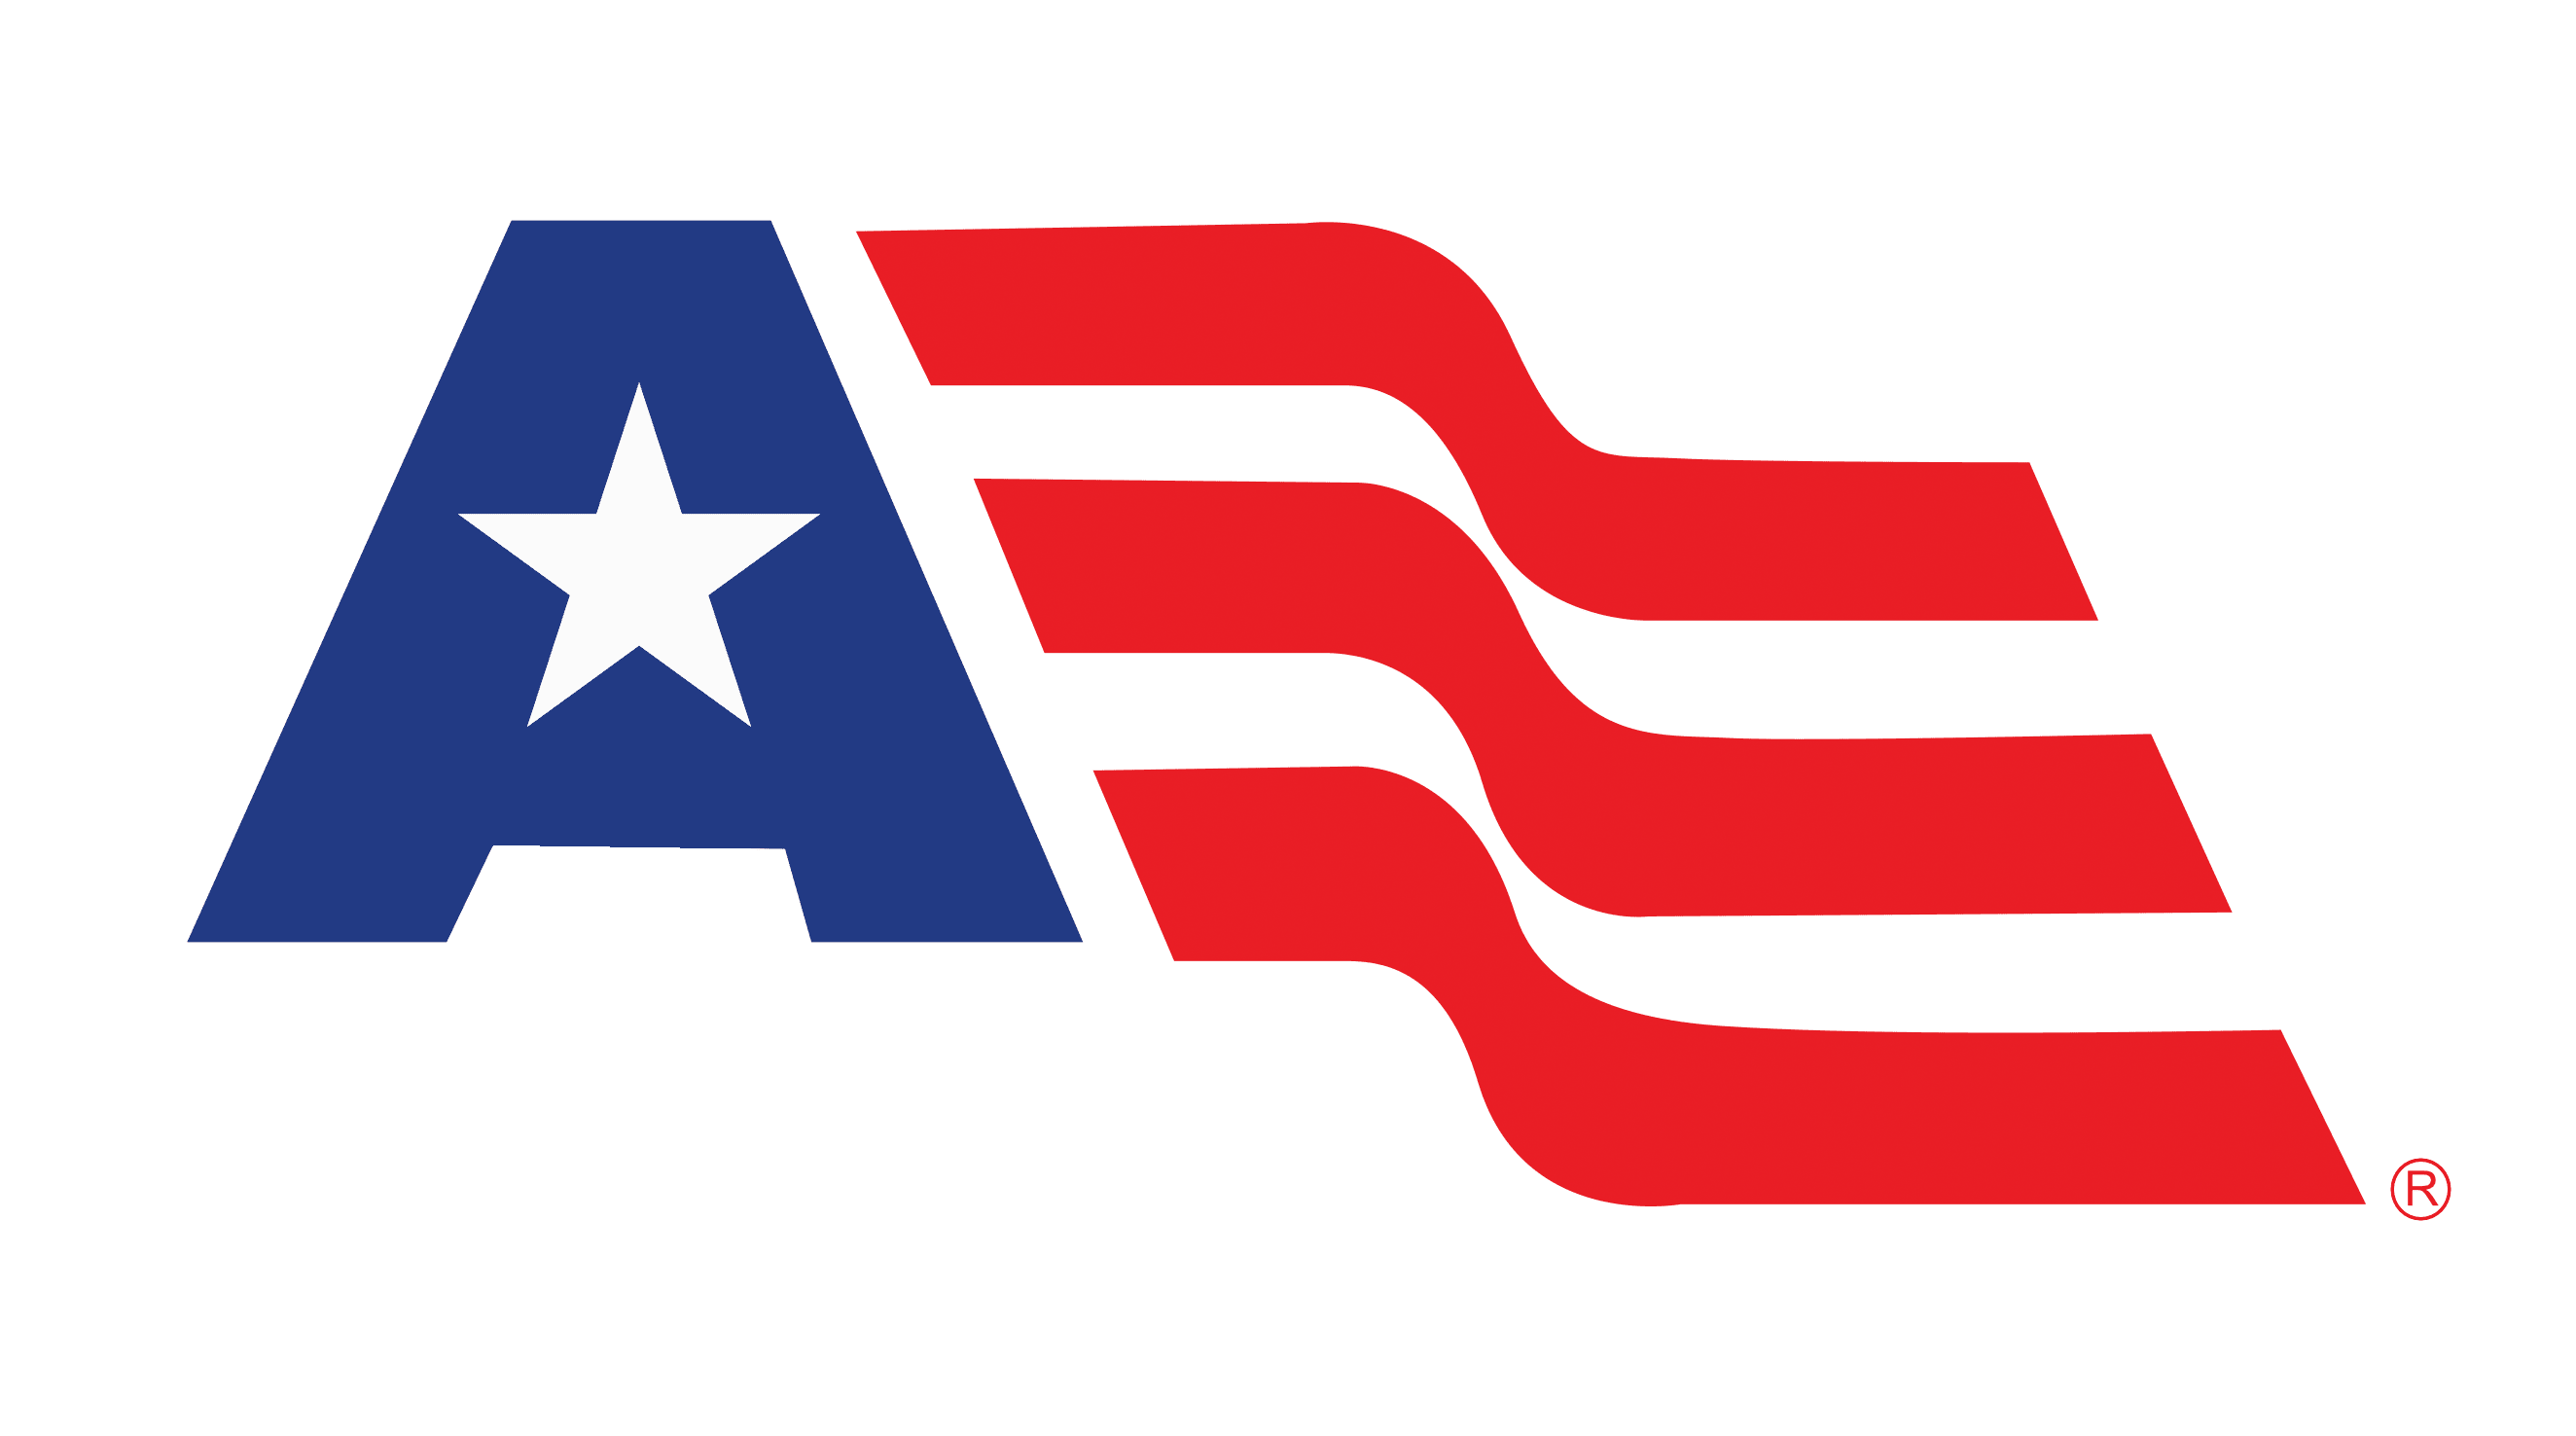 An American flag letter A icon from A-American Self Storage in Pomona, California